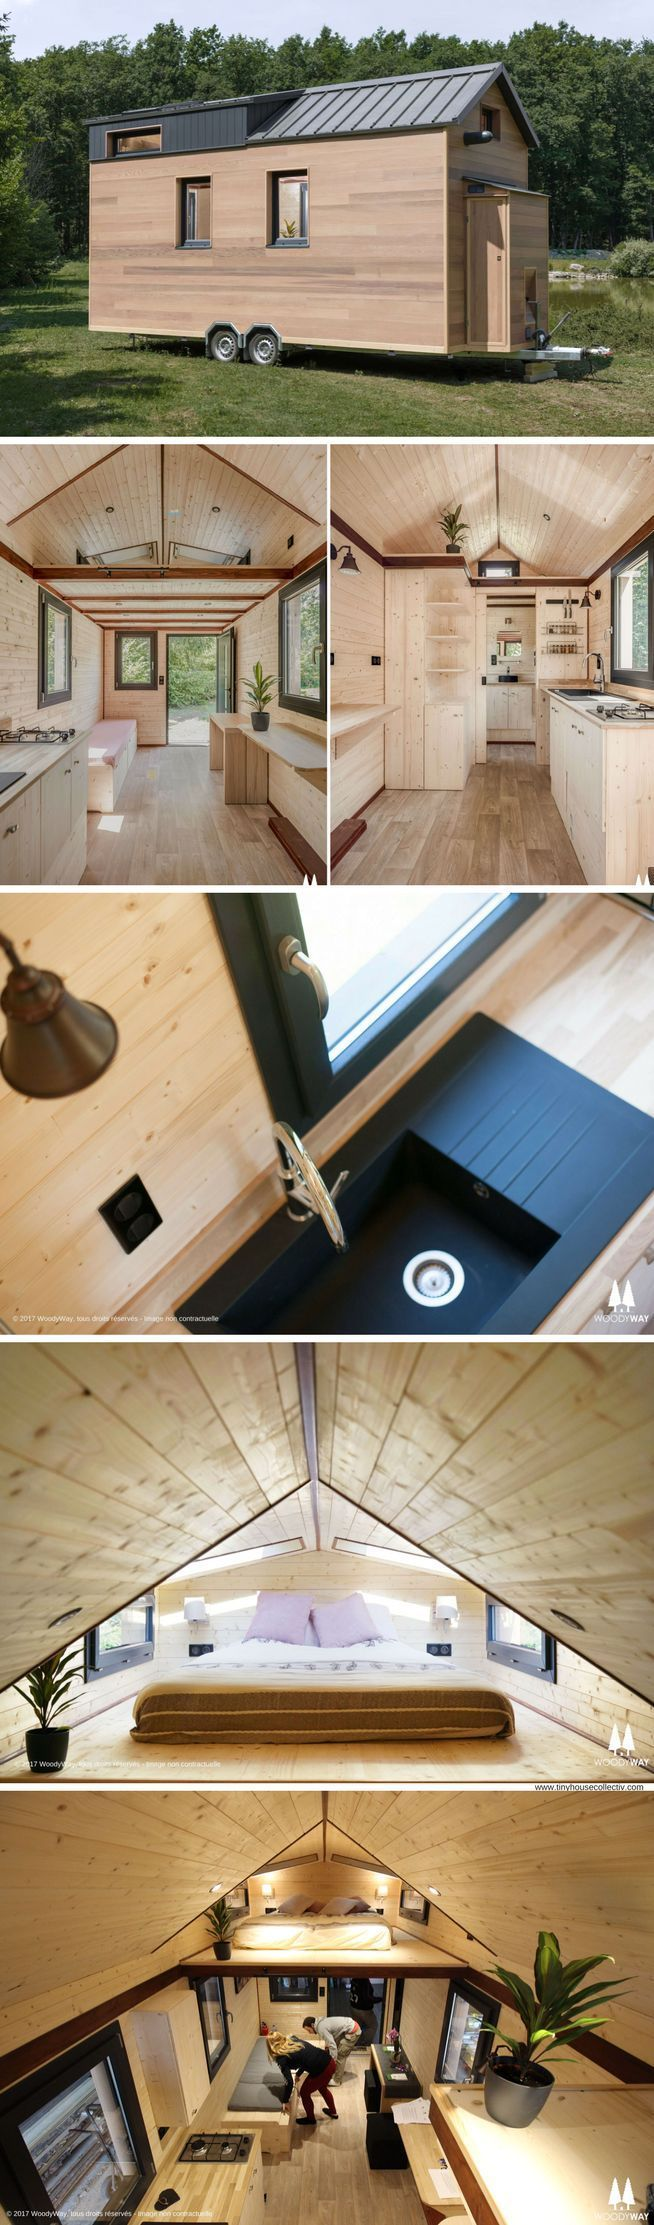 The Cottage By Woody Way Tiny House On Wheels Cottage Woody #instandhaltungsarbe…  #Instandhaltungsarbeiten